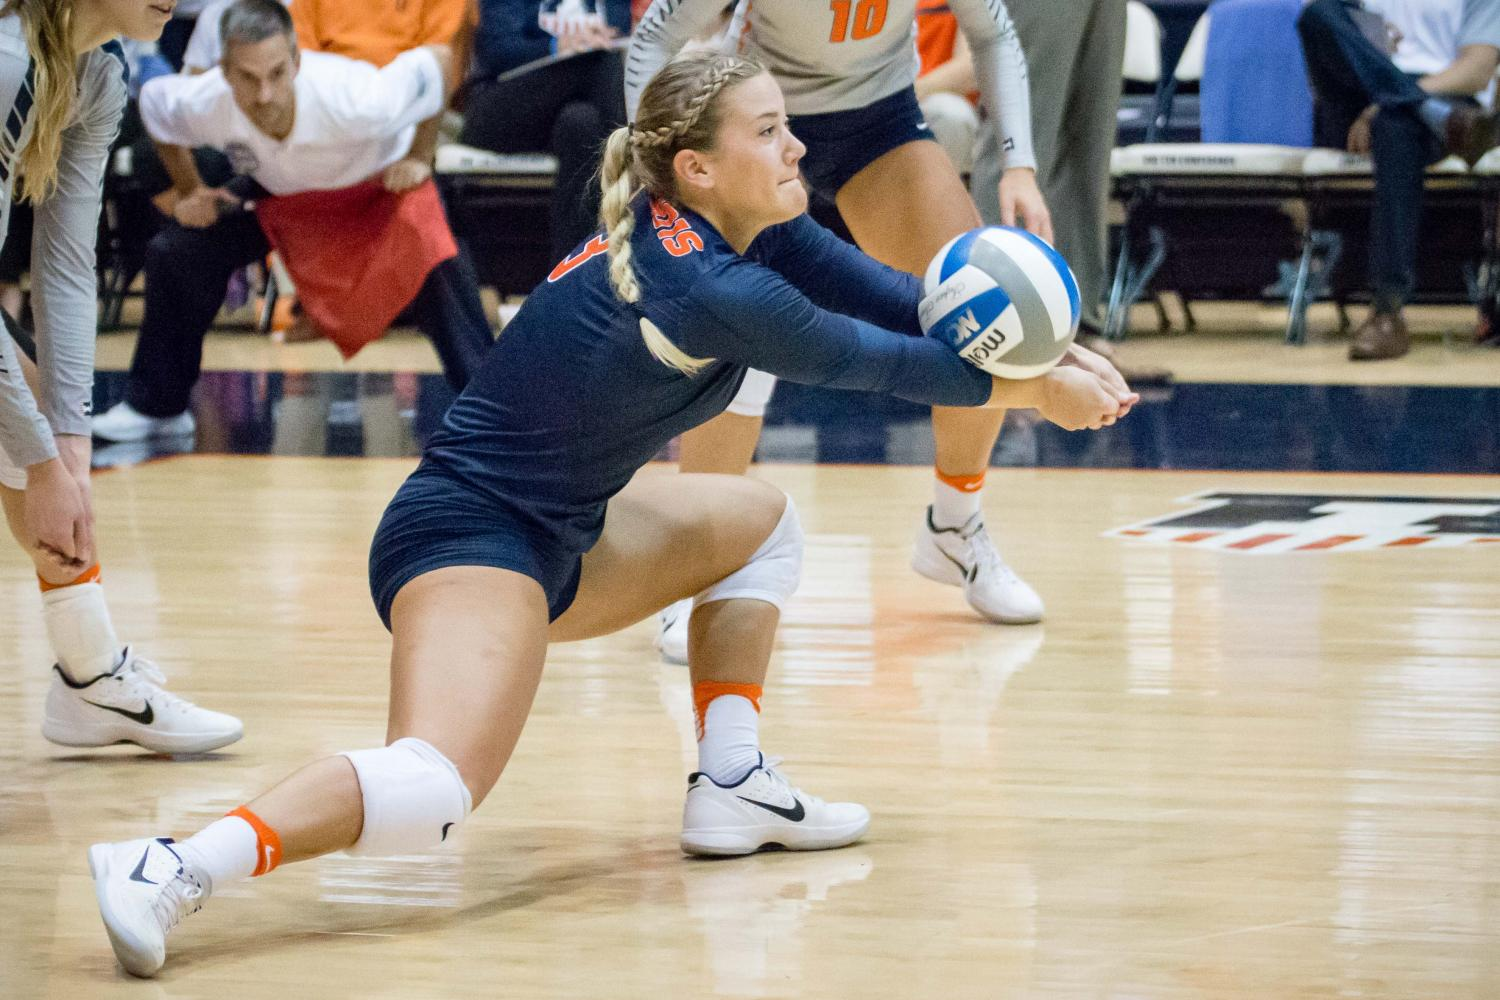 Illinois%E2%80%99+Brandi+Donnelly+passes+the+ball+during+the+match+against+Northwestern+at+Huff+Hall+on+Oct.+15.+The+Illini+won+3-0.+Former+head+coach+Kevin+Hambly+left+the+University+to+coach+at+Stanford.+